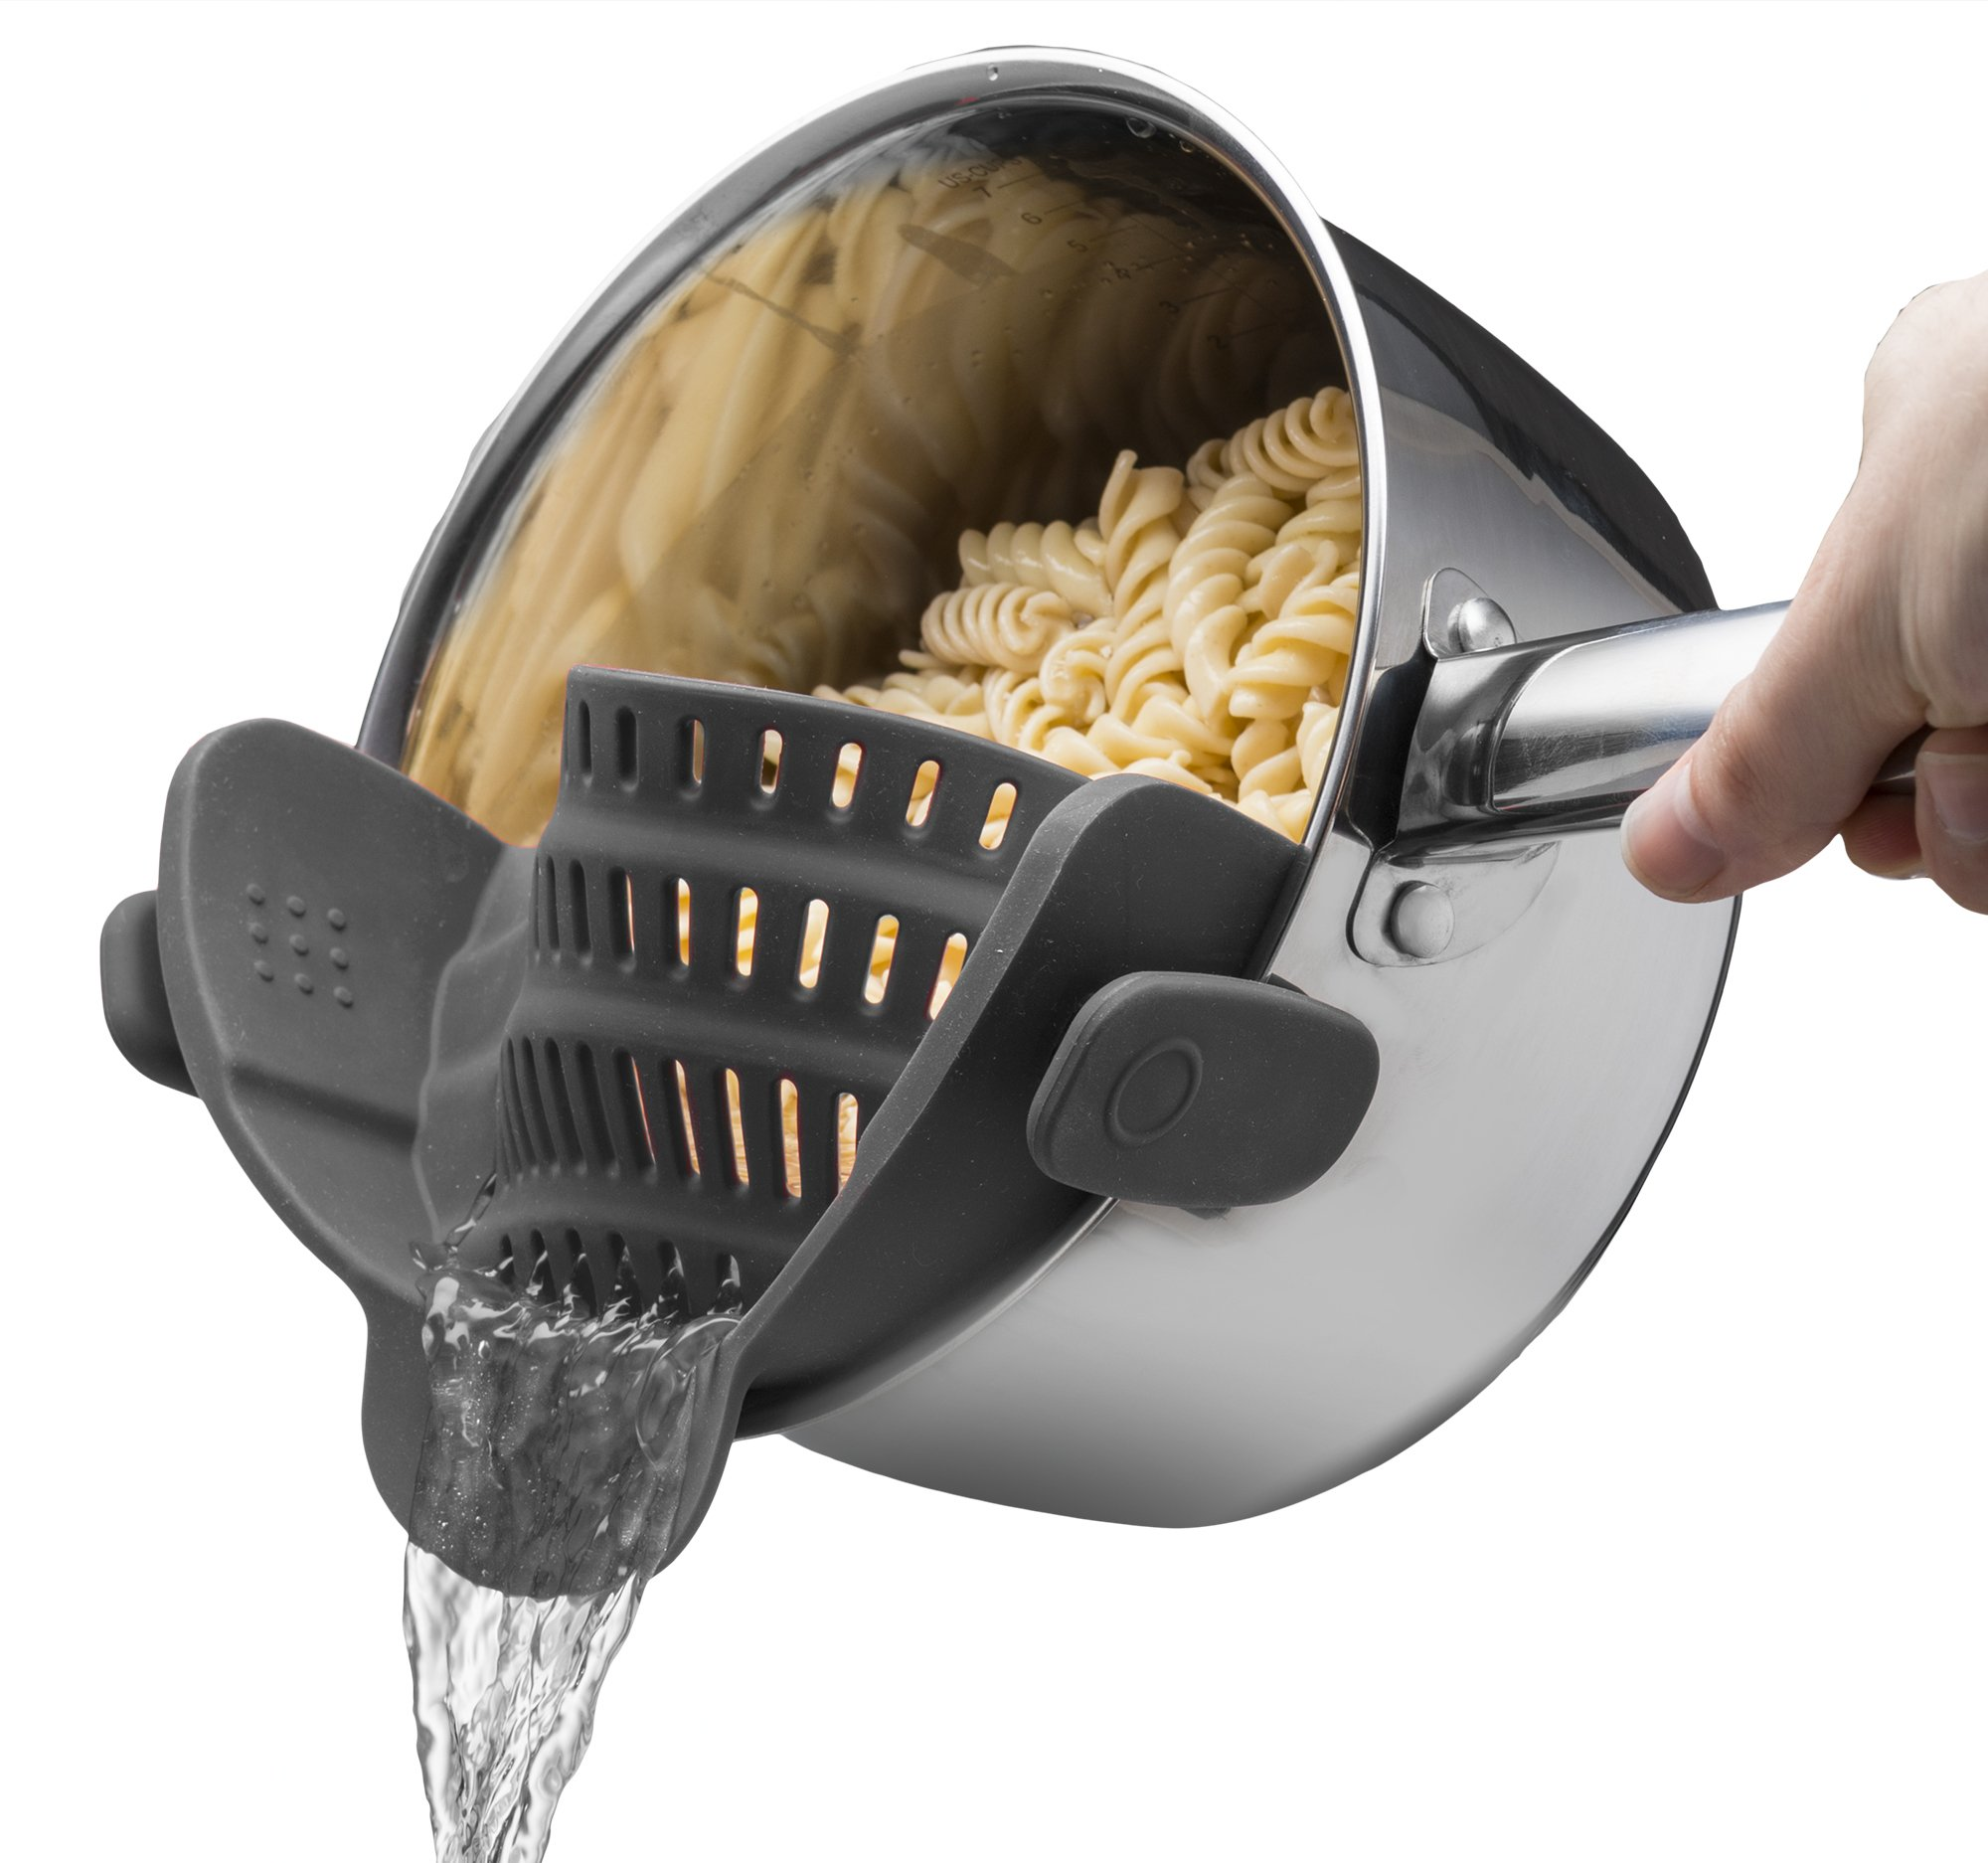 Kitchen Gizmo Snap N Strain Strainer, Clip On Silicone Colander, Fits all Pots and Bowls - Grey